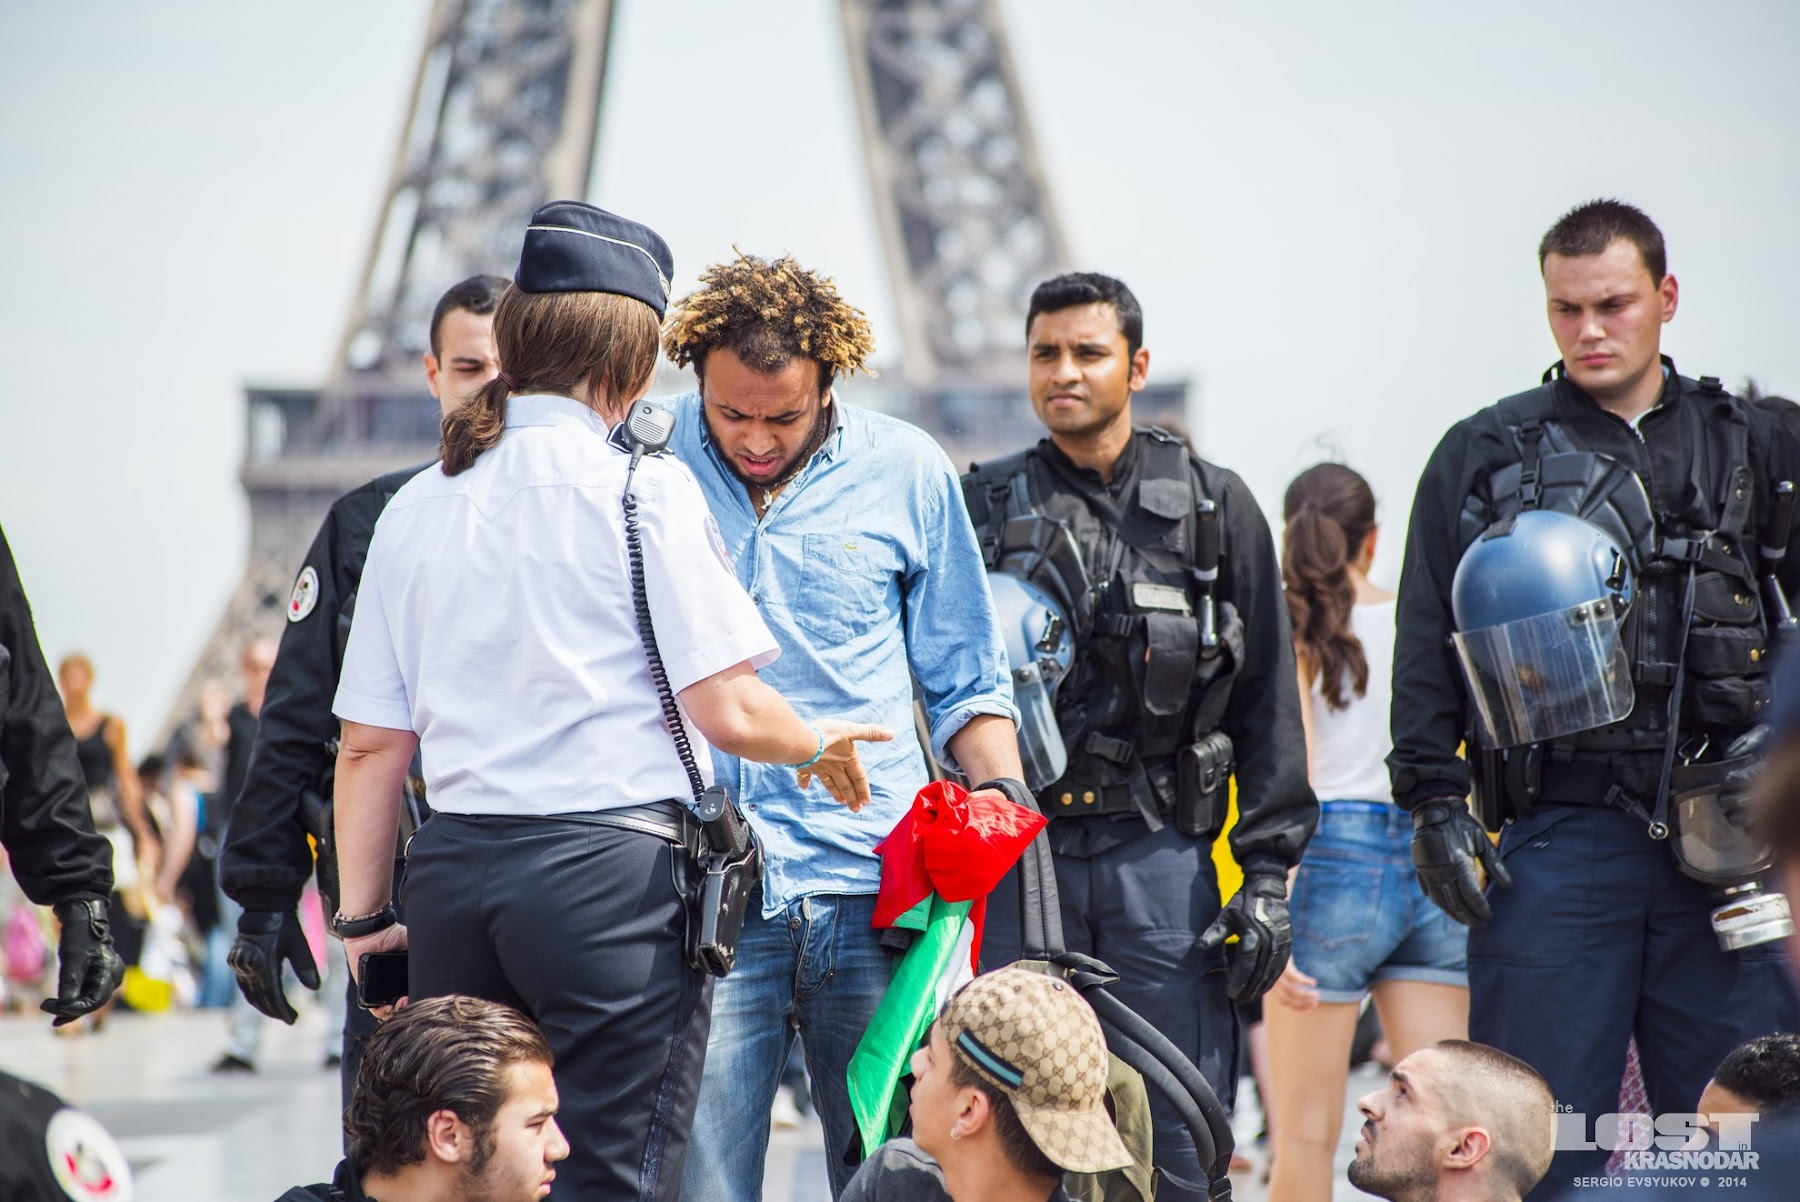 French gendarme stopped the protest